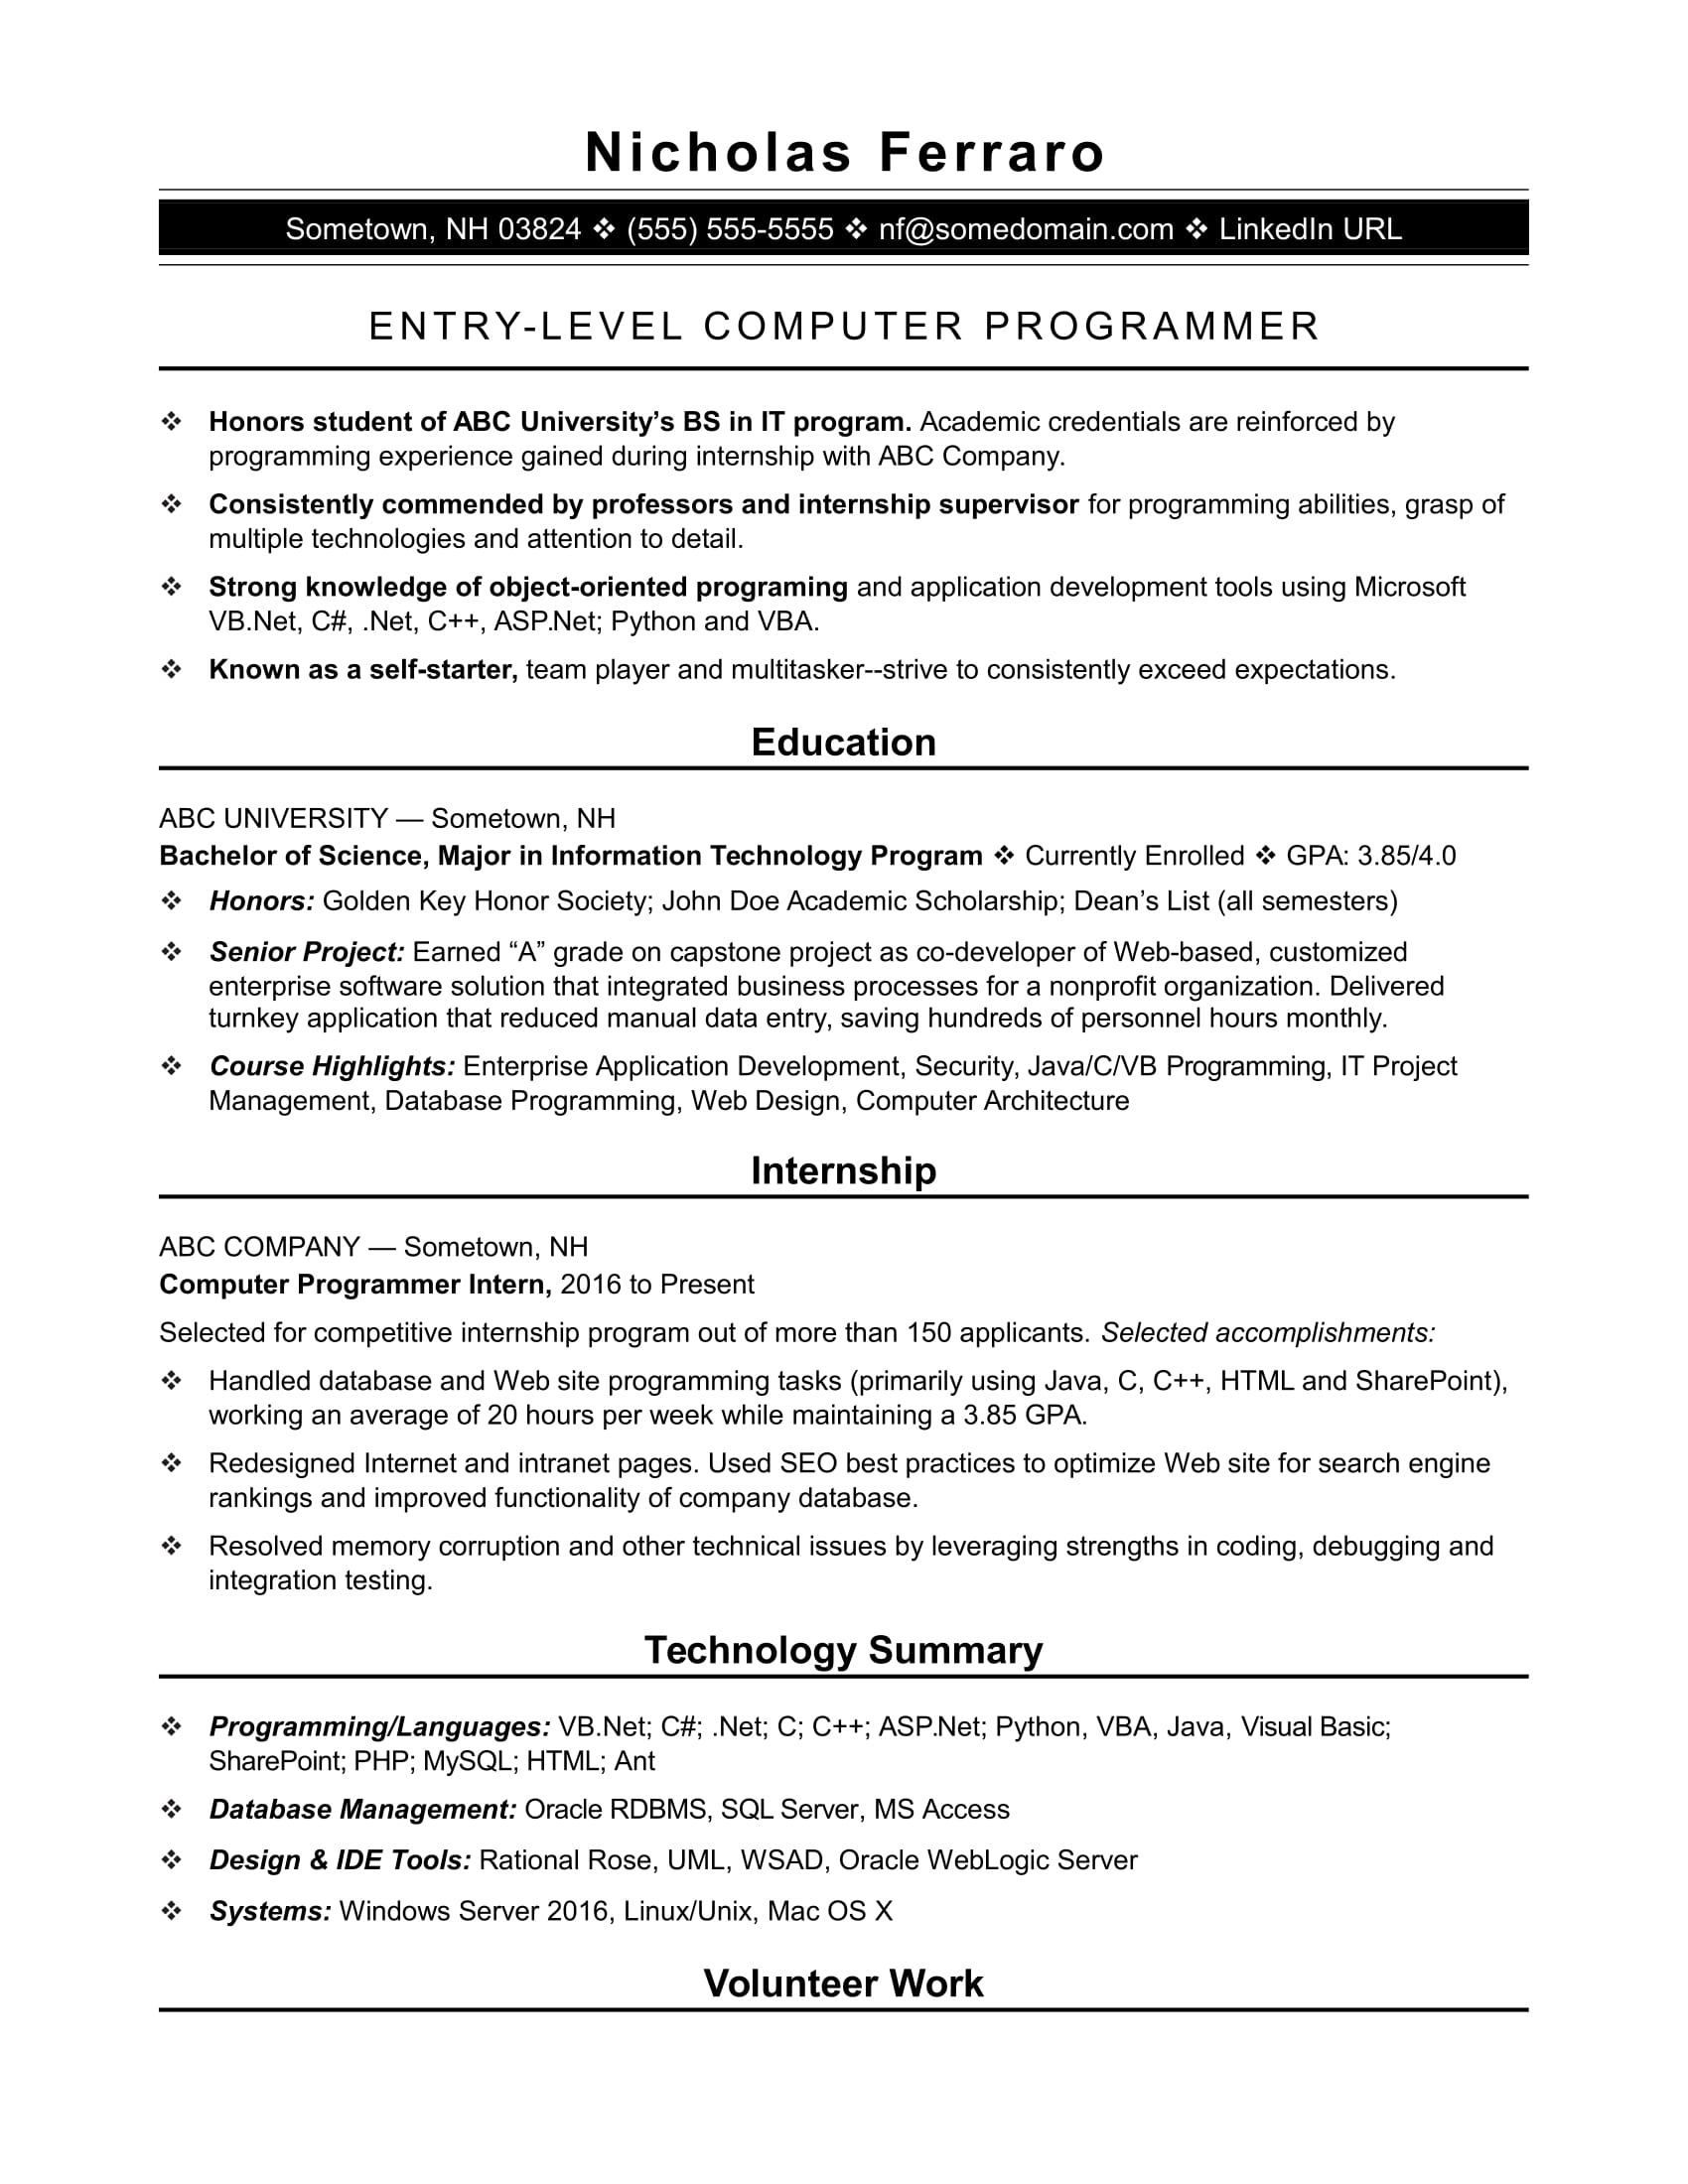 sample resume for an entry level computer programmer - How To Write A Entry Level Resume